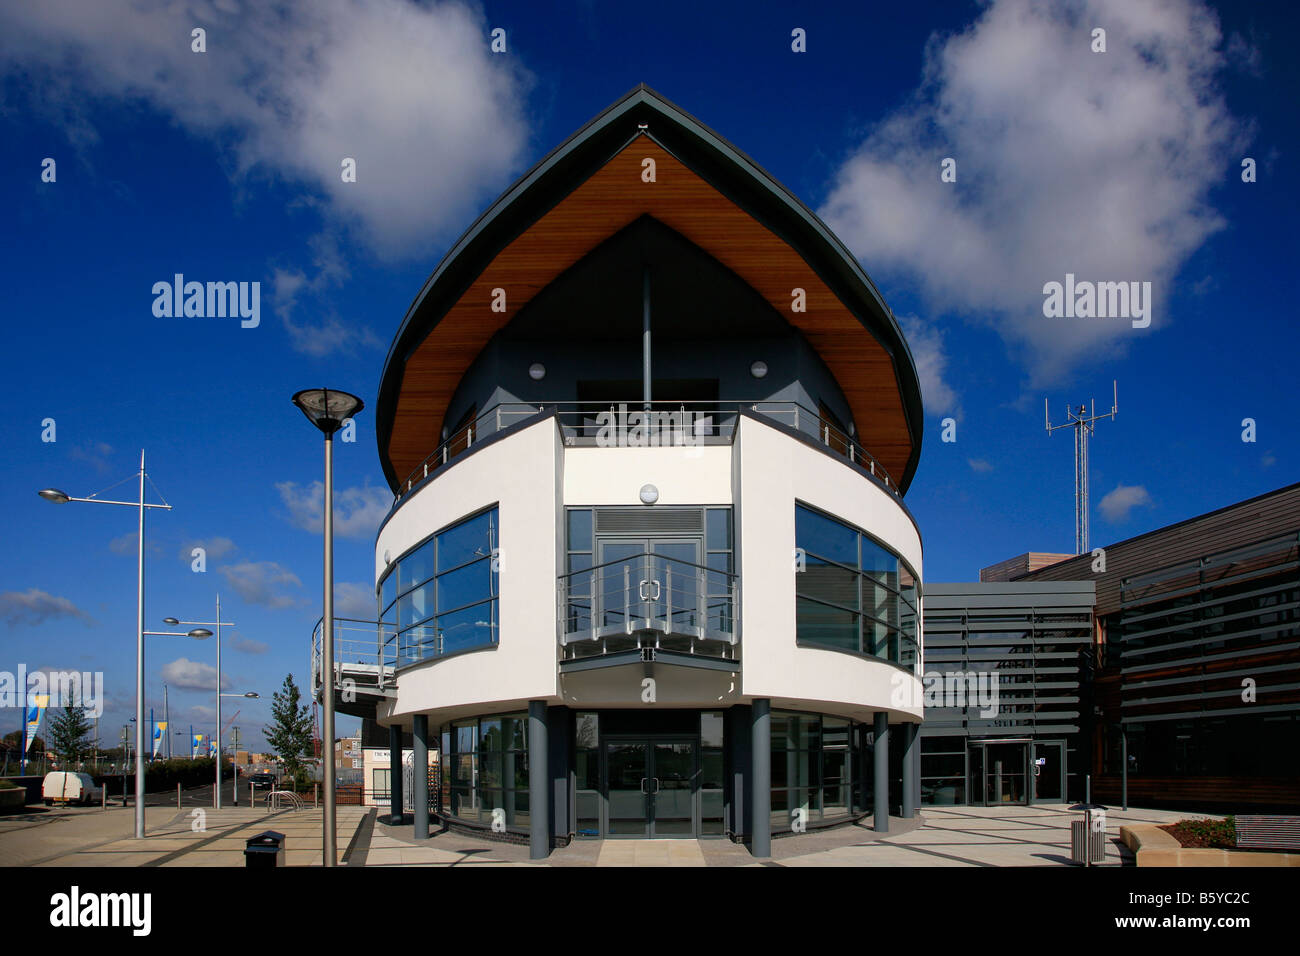 The New Modern Architecture Boat House Centre Wisbech town Docks River Nene Fenland Cambridgeshire County England - Stock Image